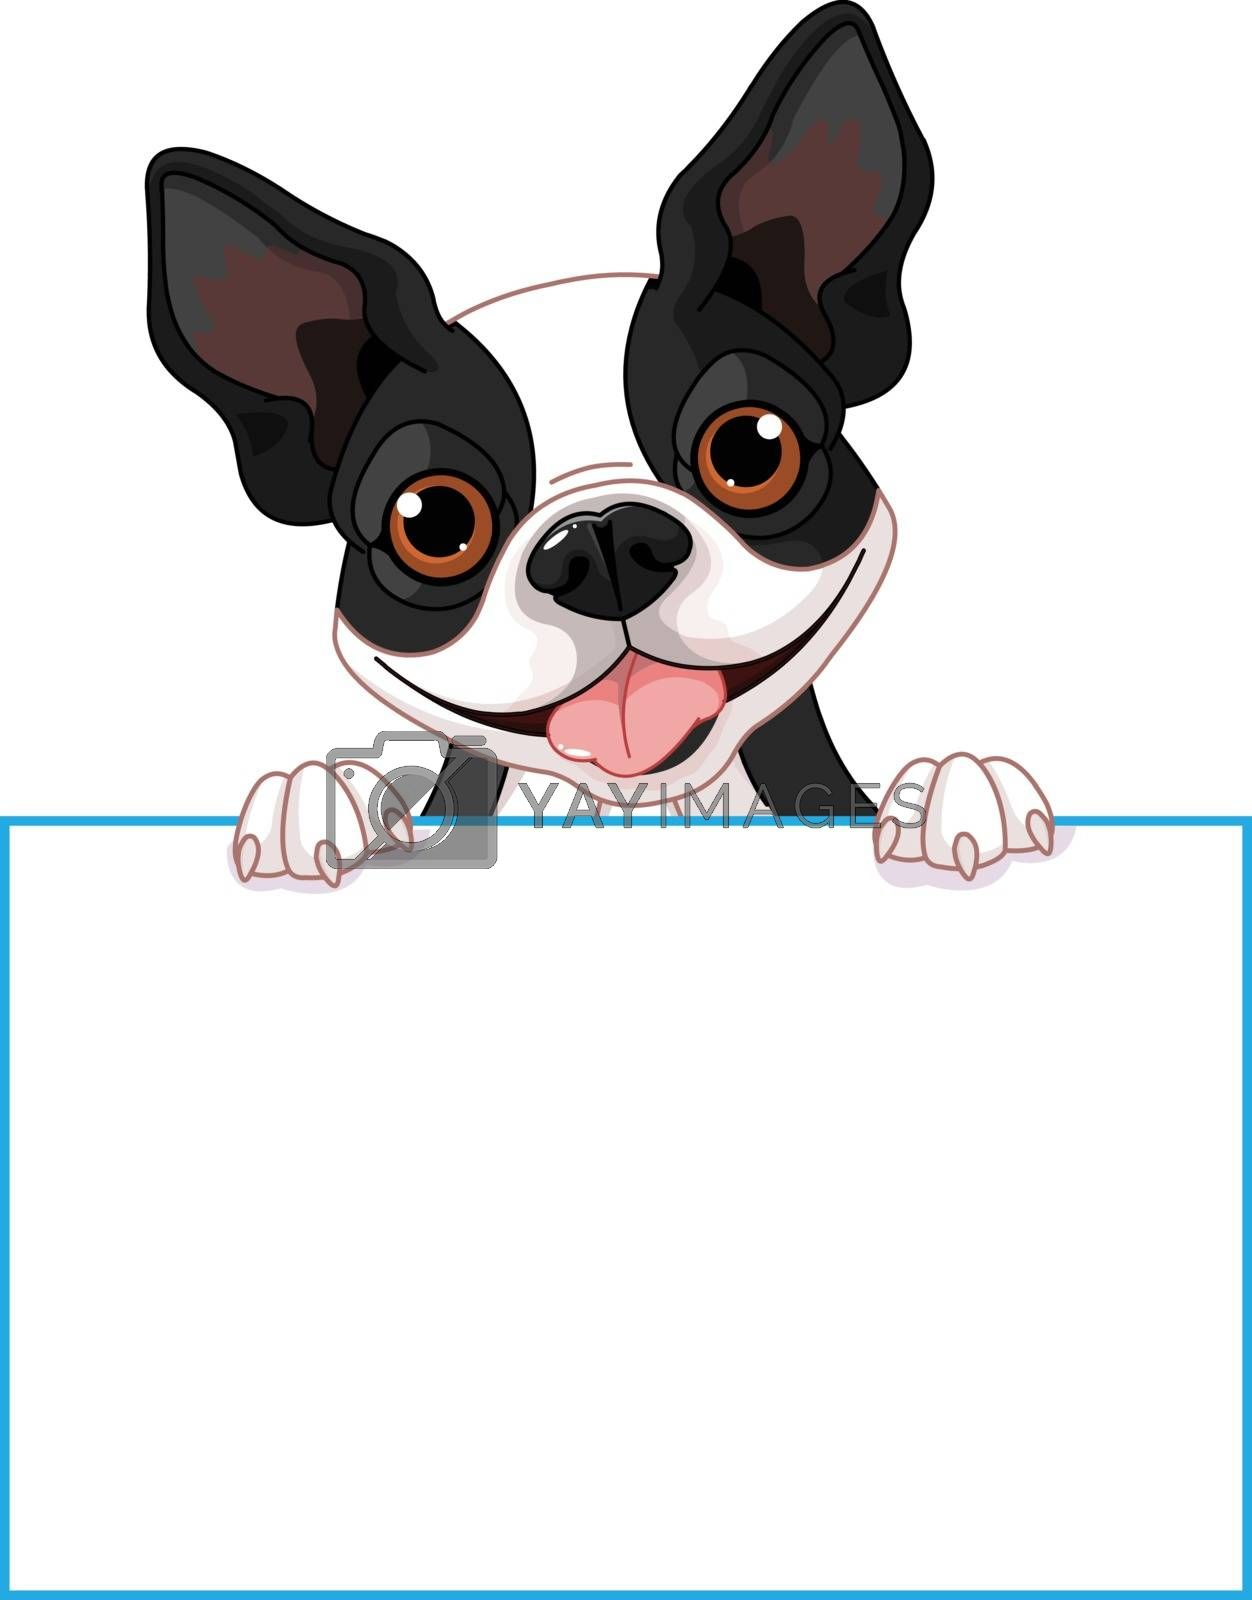 Royalty free image of Boston terrier sign by Dazdraperma